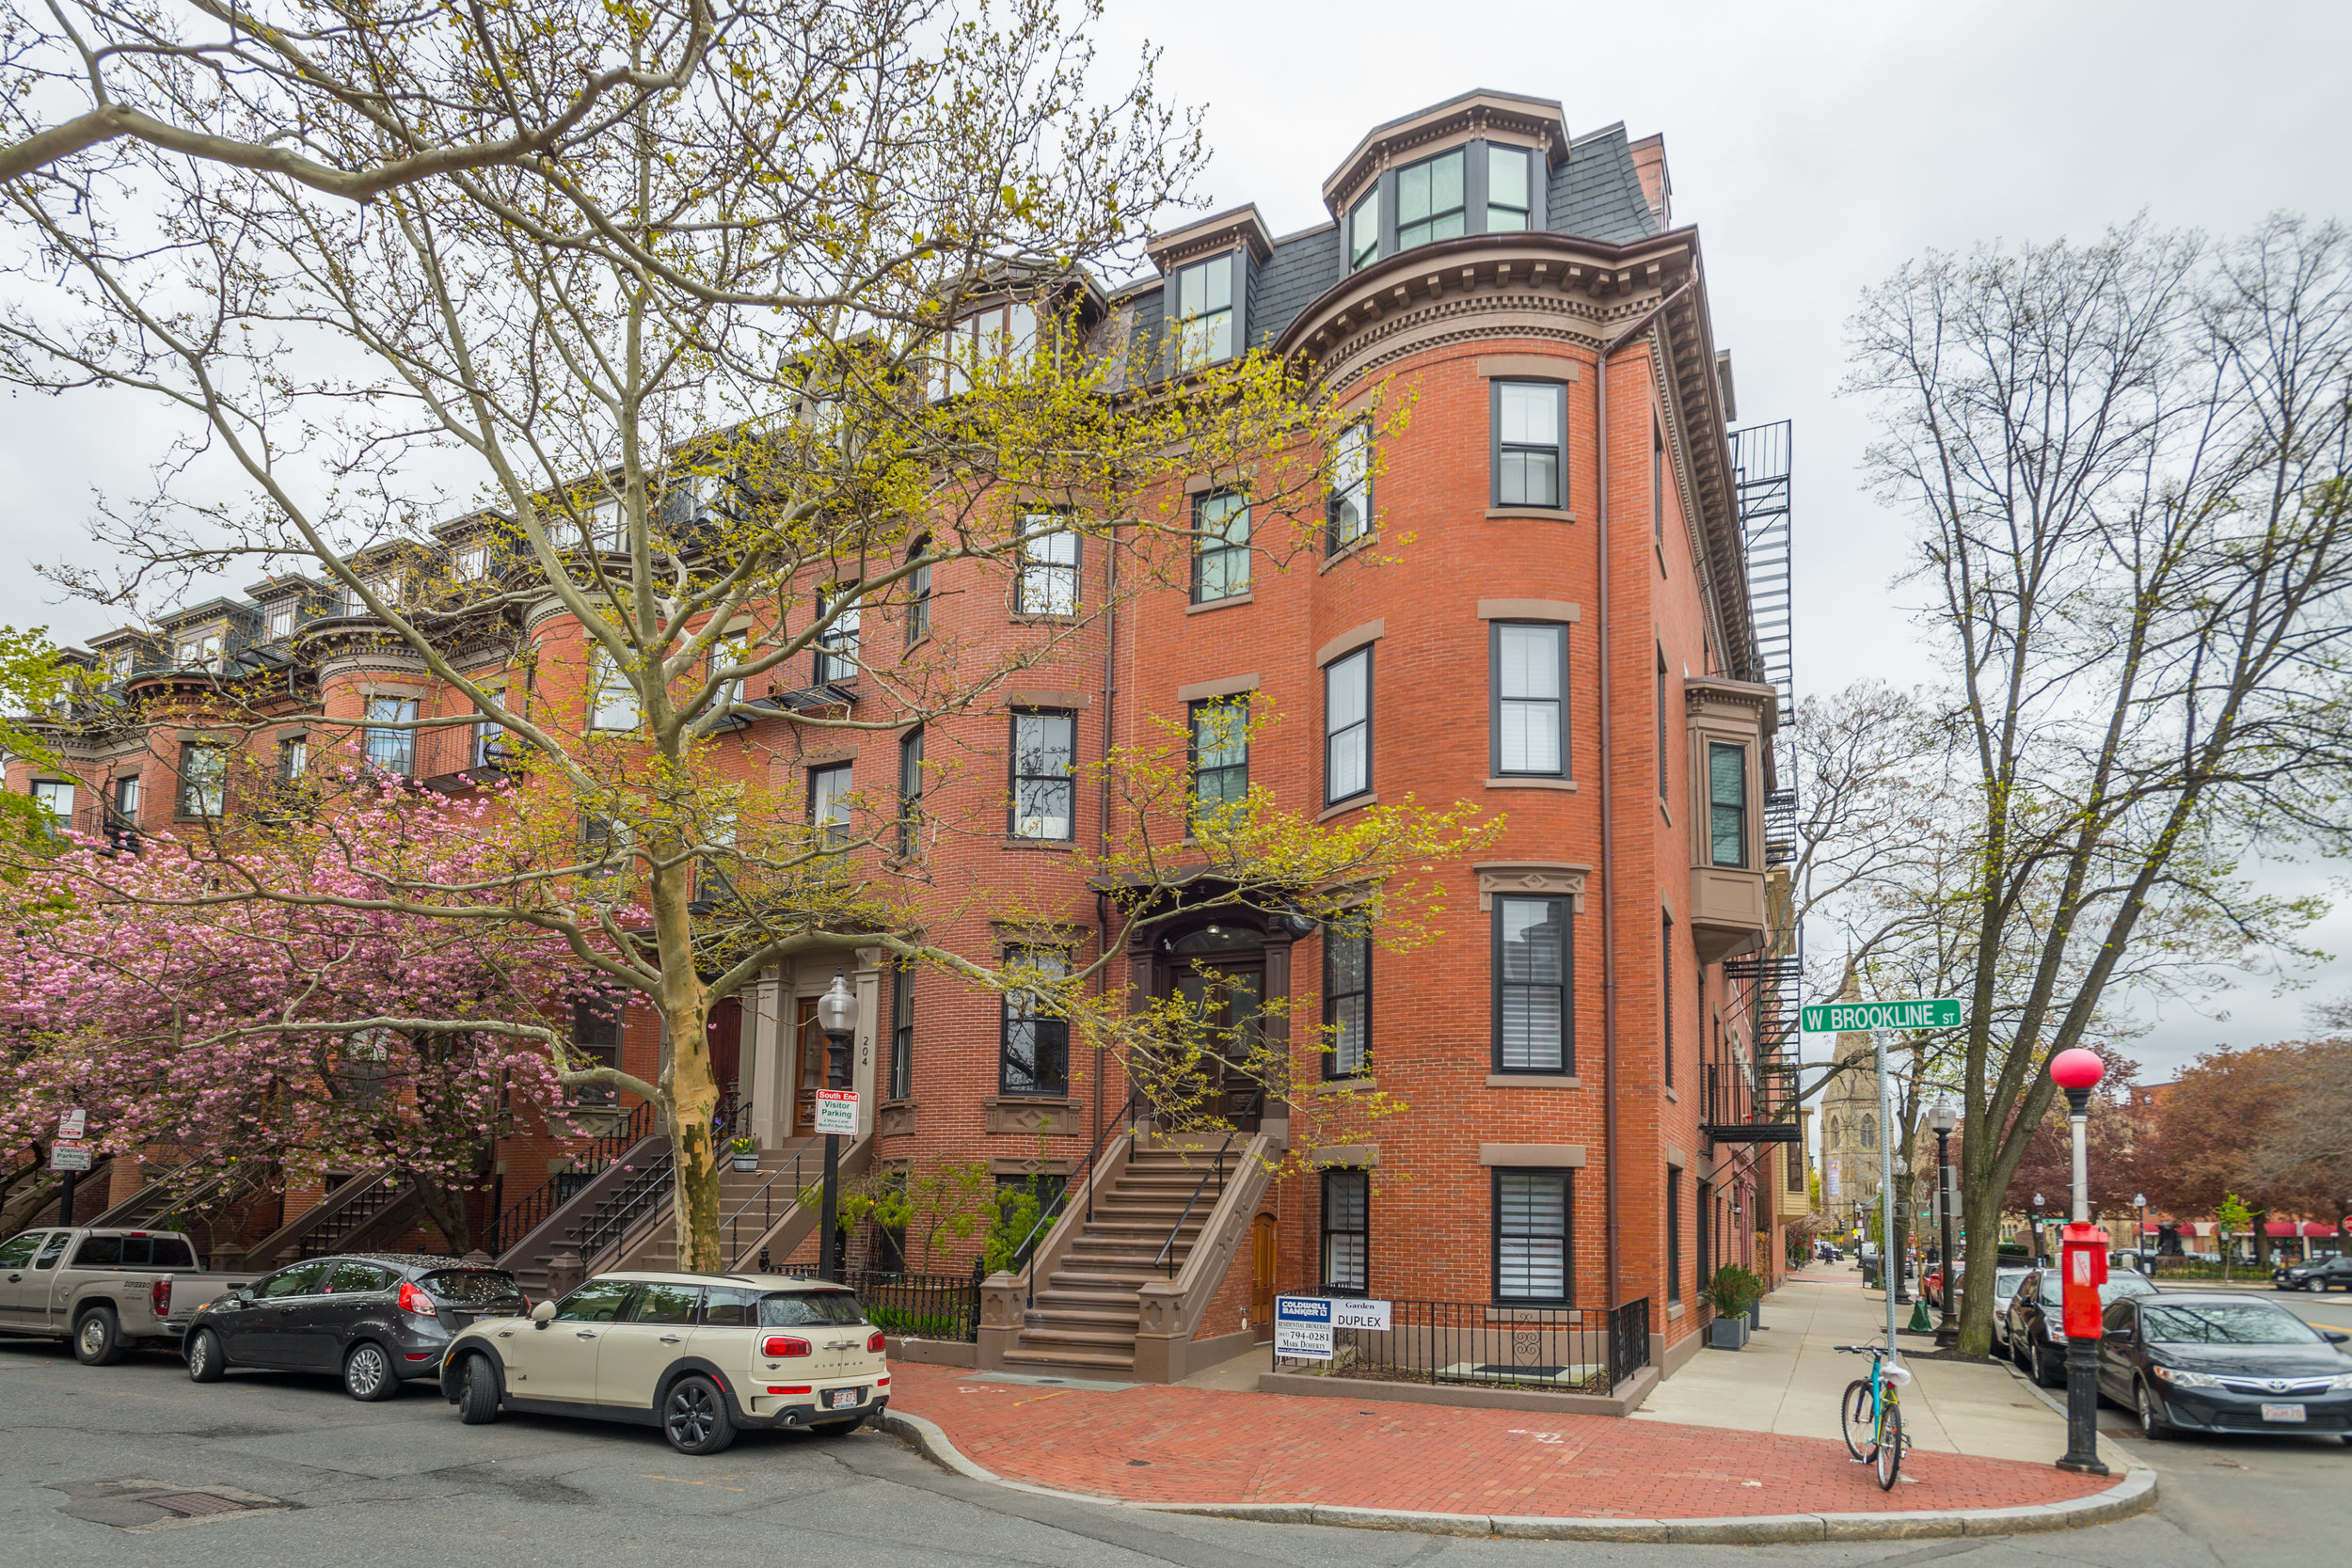 West Brookline Street, Boston, MA  - Staging for Mark Doherty at Coldwell Banker